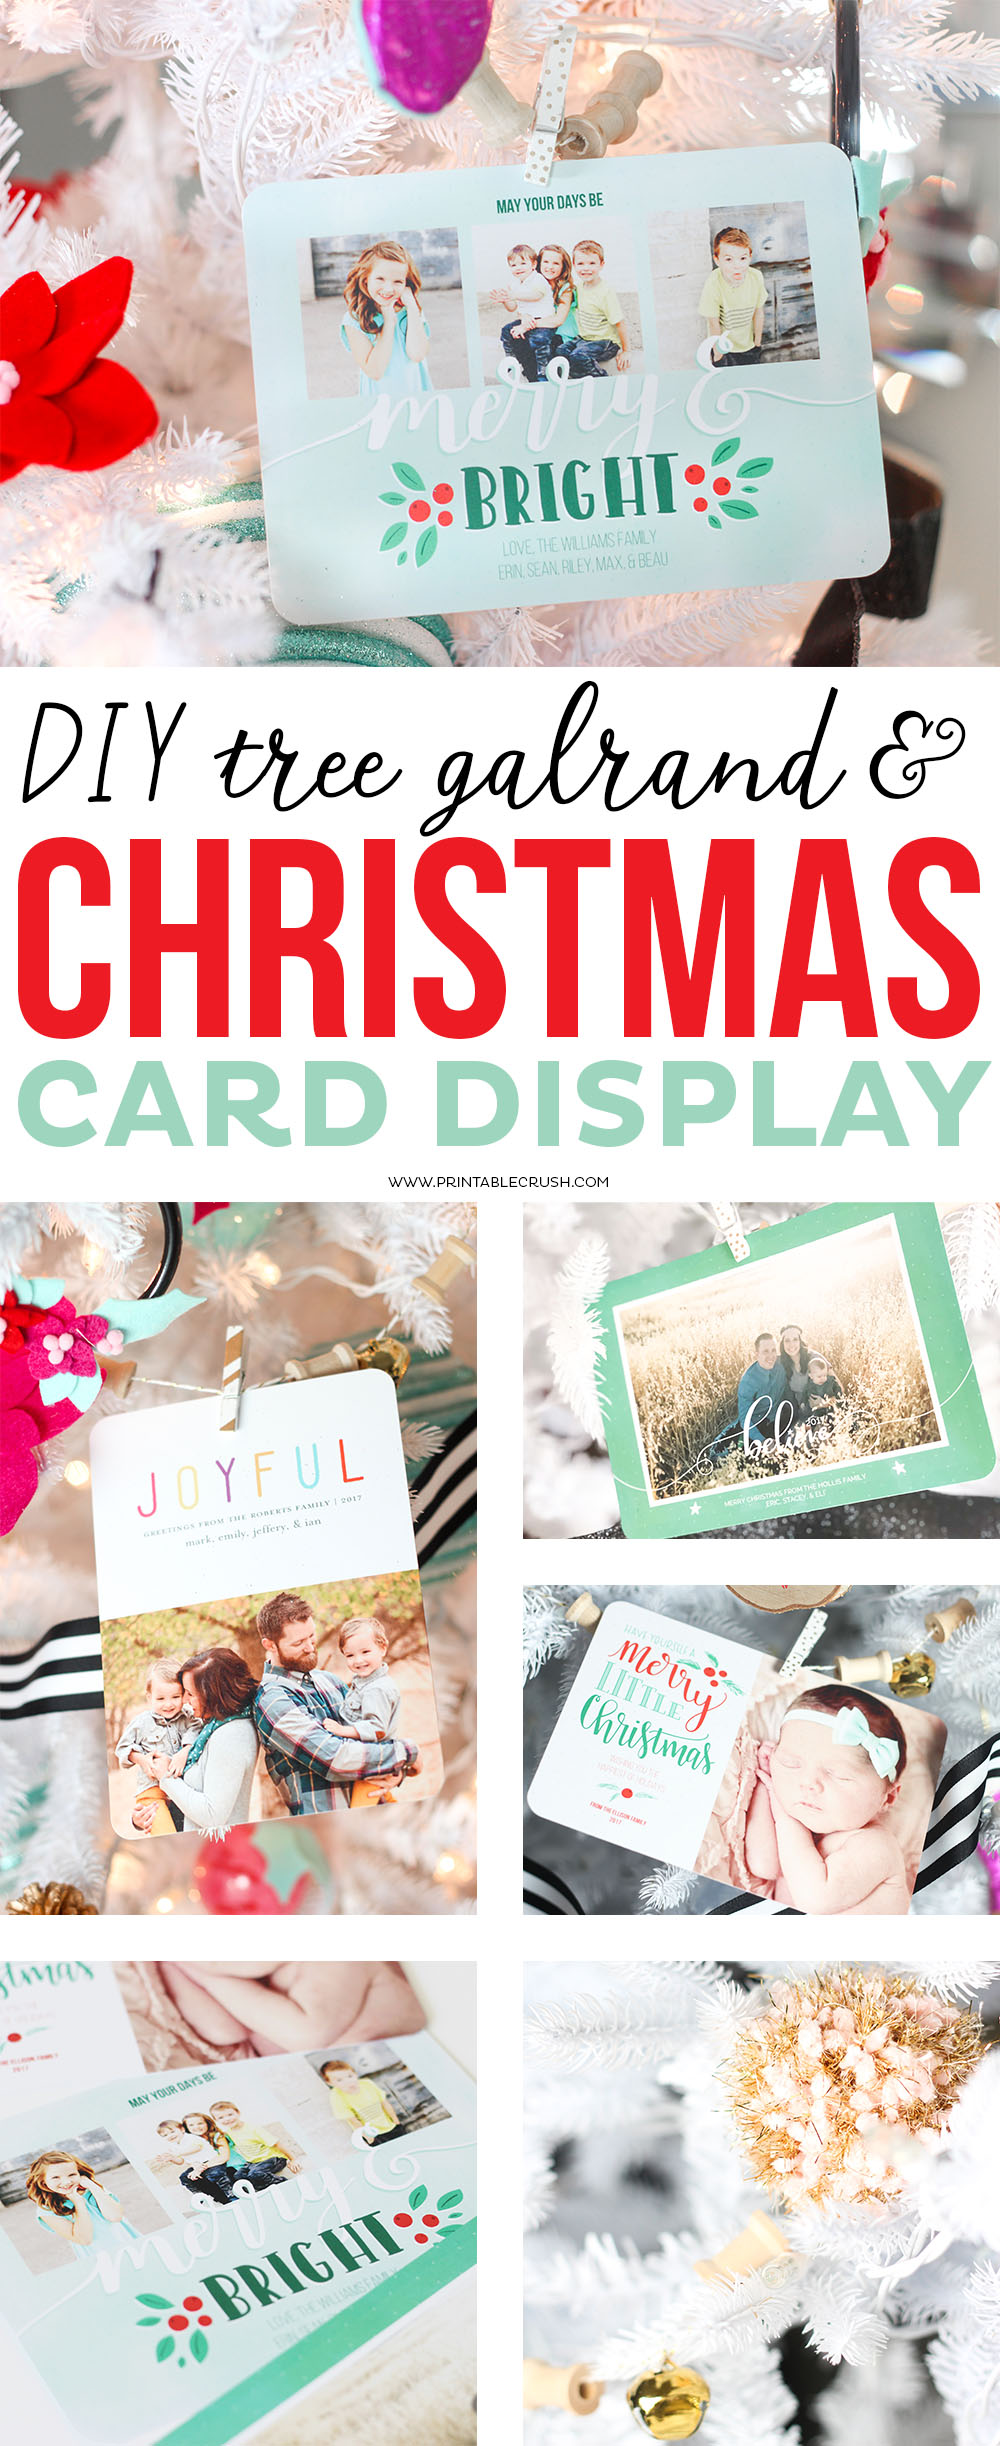 Give your Tree a personal touch this year with this super easyDIY Tree Garland Christmas Card Display! Includes fun items like pom poms and bells!